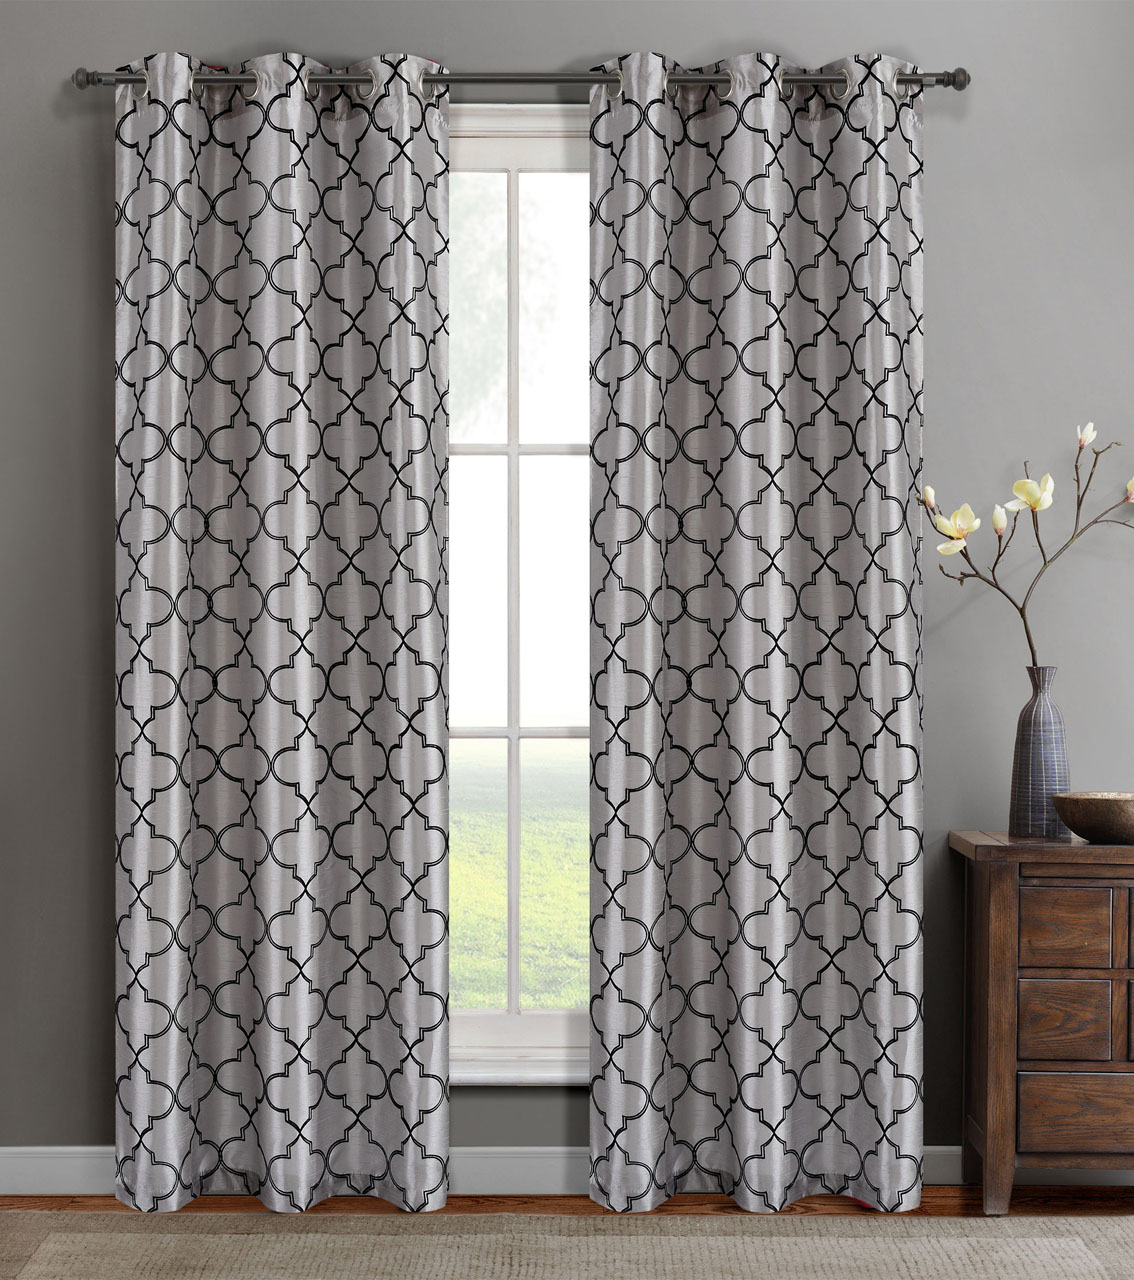 Single Oliver Silver Faux Silk Window Curtain Panel W/Grommets